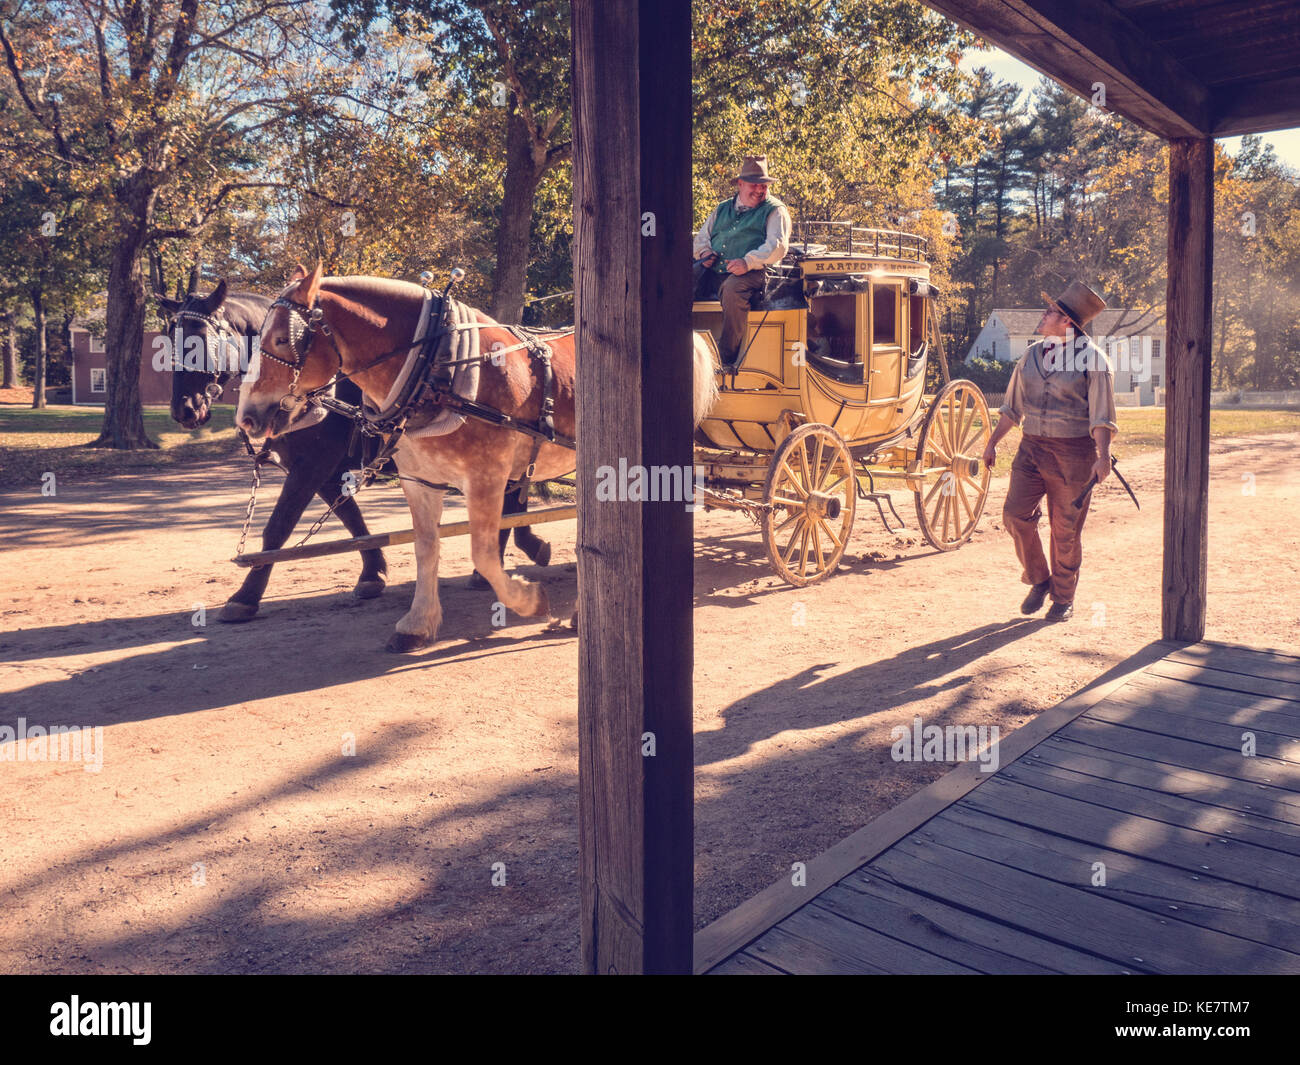 1830's American stage coach. - Stock Image